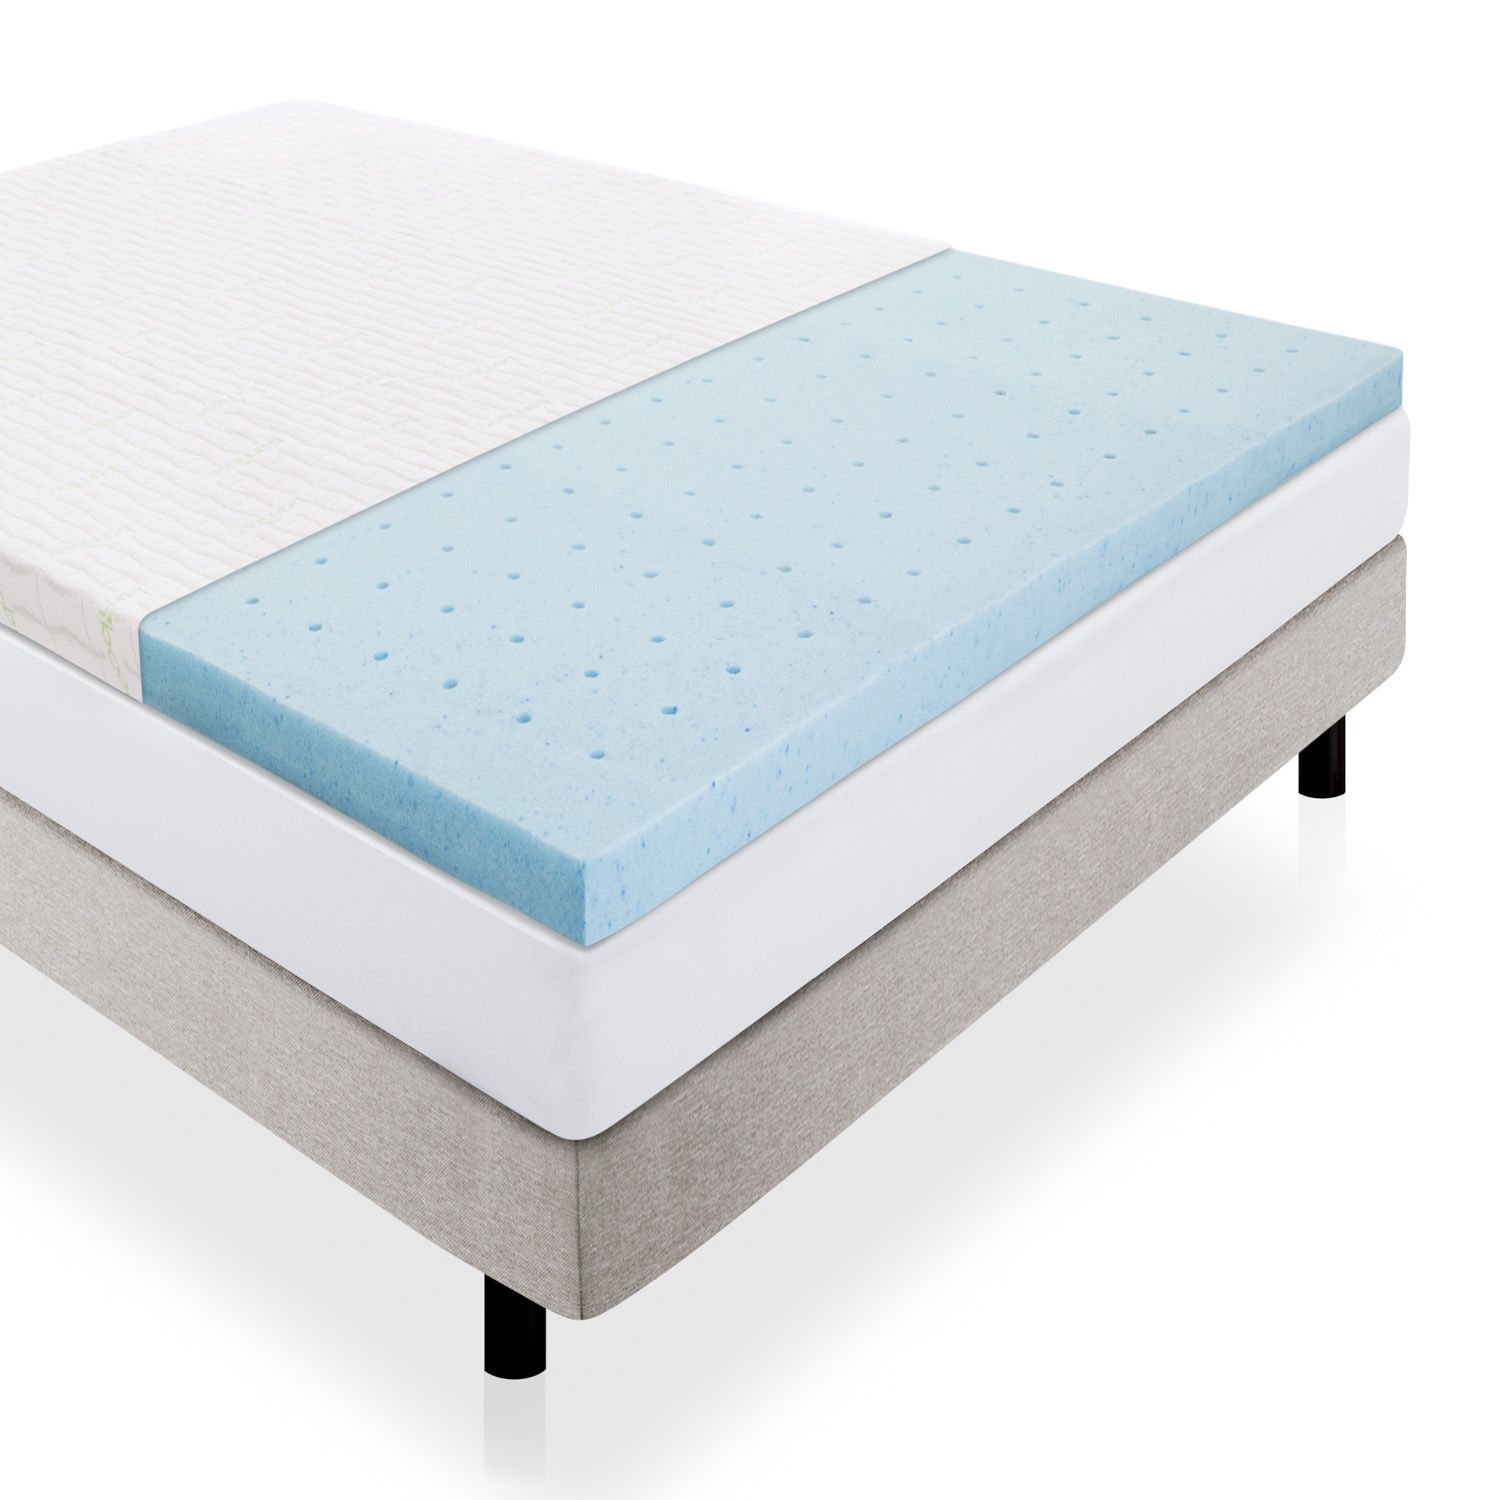 2 5 Inch Pureflow Ventilated Gel Memory Foam Mattress Topper With Removable Cover By Lucid Comfort Collection Blue California King Memory Foam Mattress Topper Mattress Mattress Pad